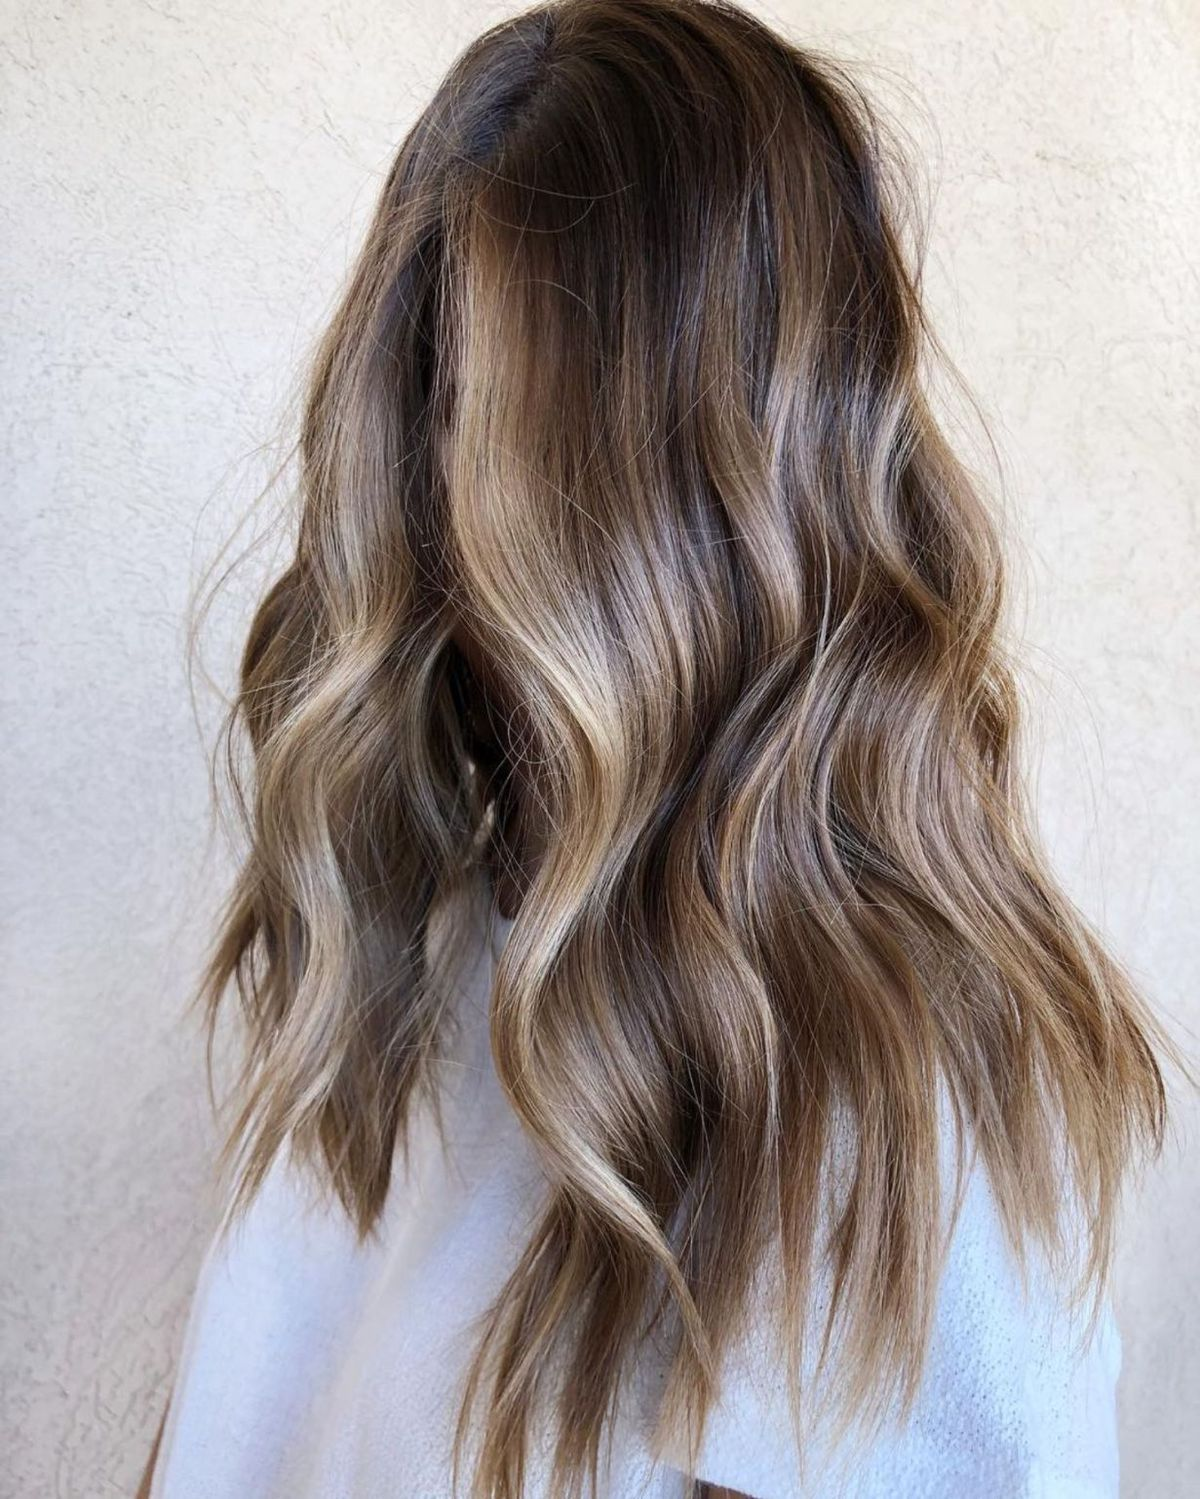 """Bronde Colormelt For Long Hair<p><a href=""""http://www.homeinteriordesign.org/2018/02/short-guide-to-interior-decoration.html"""">Short guide to interior decoration</a></p>"""